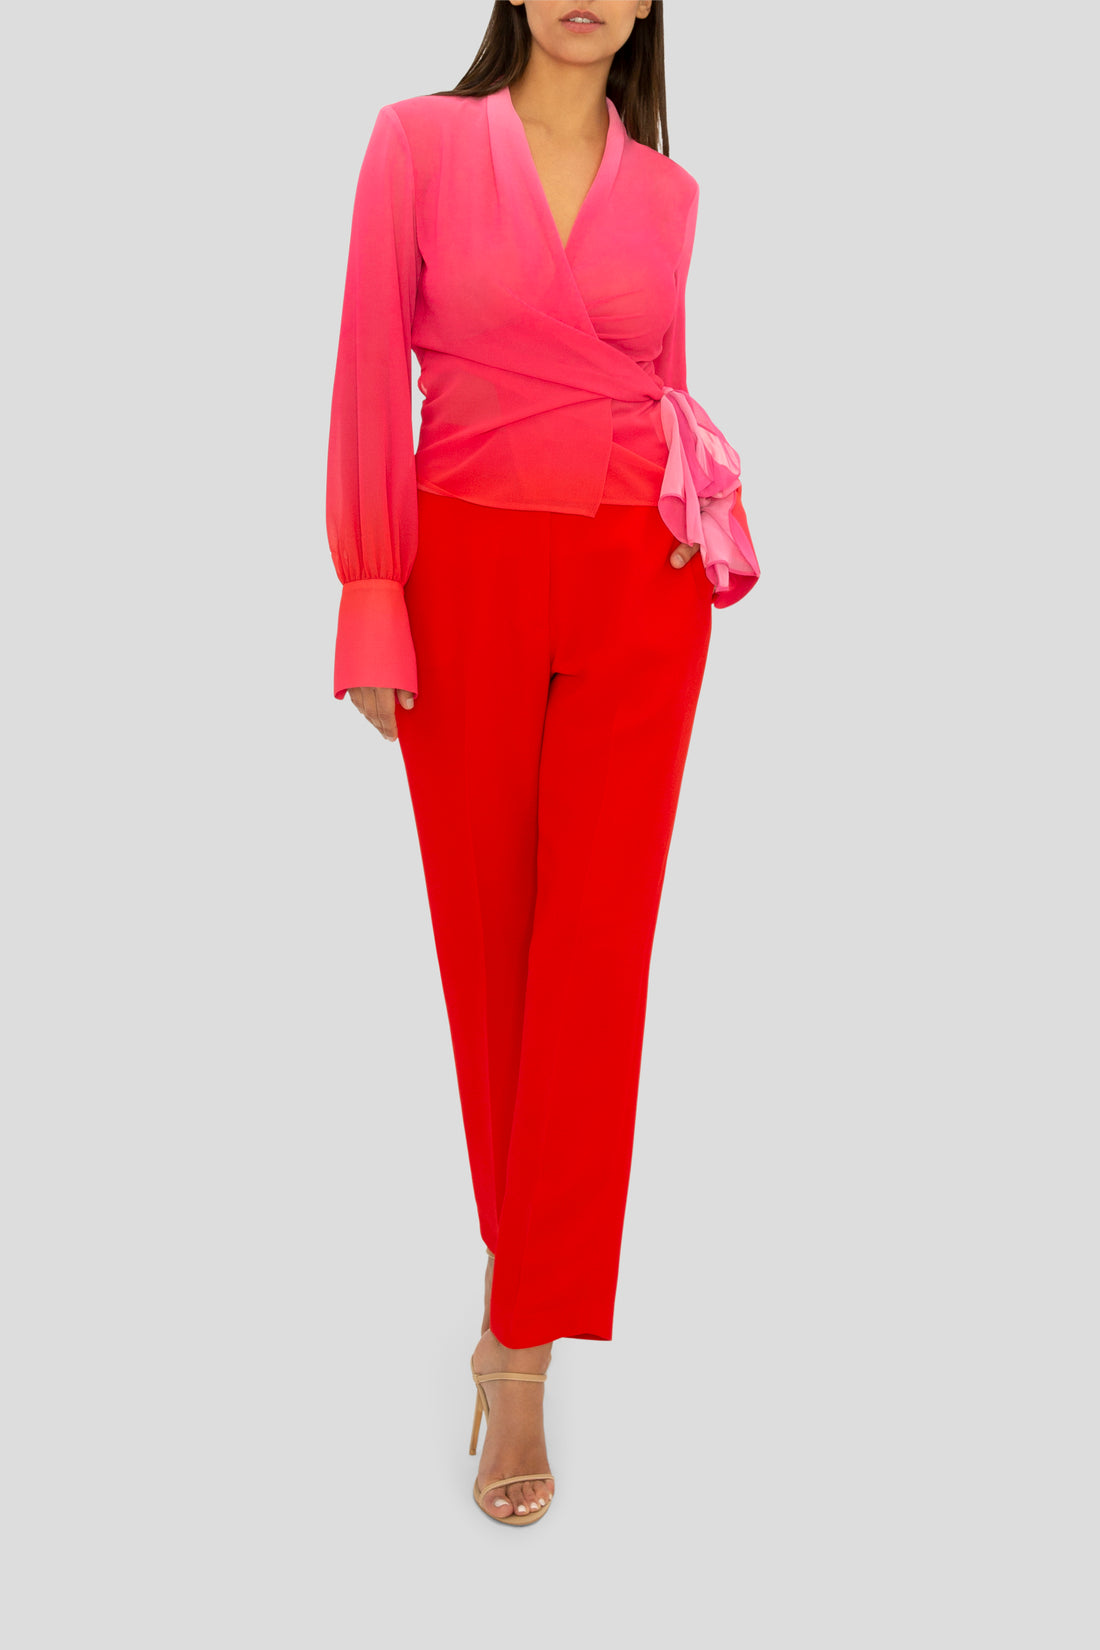 THE PASSION PINK OMBRE WRAP SHIRT